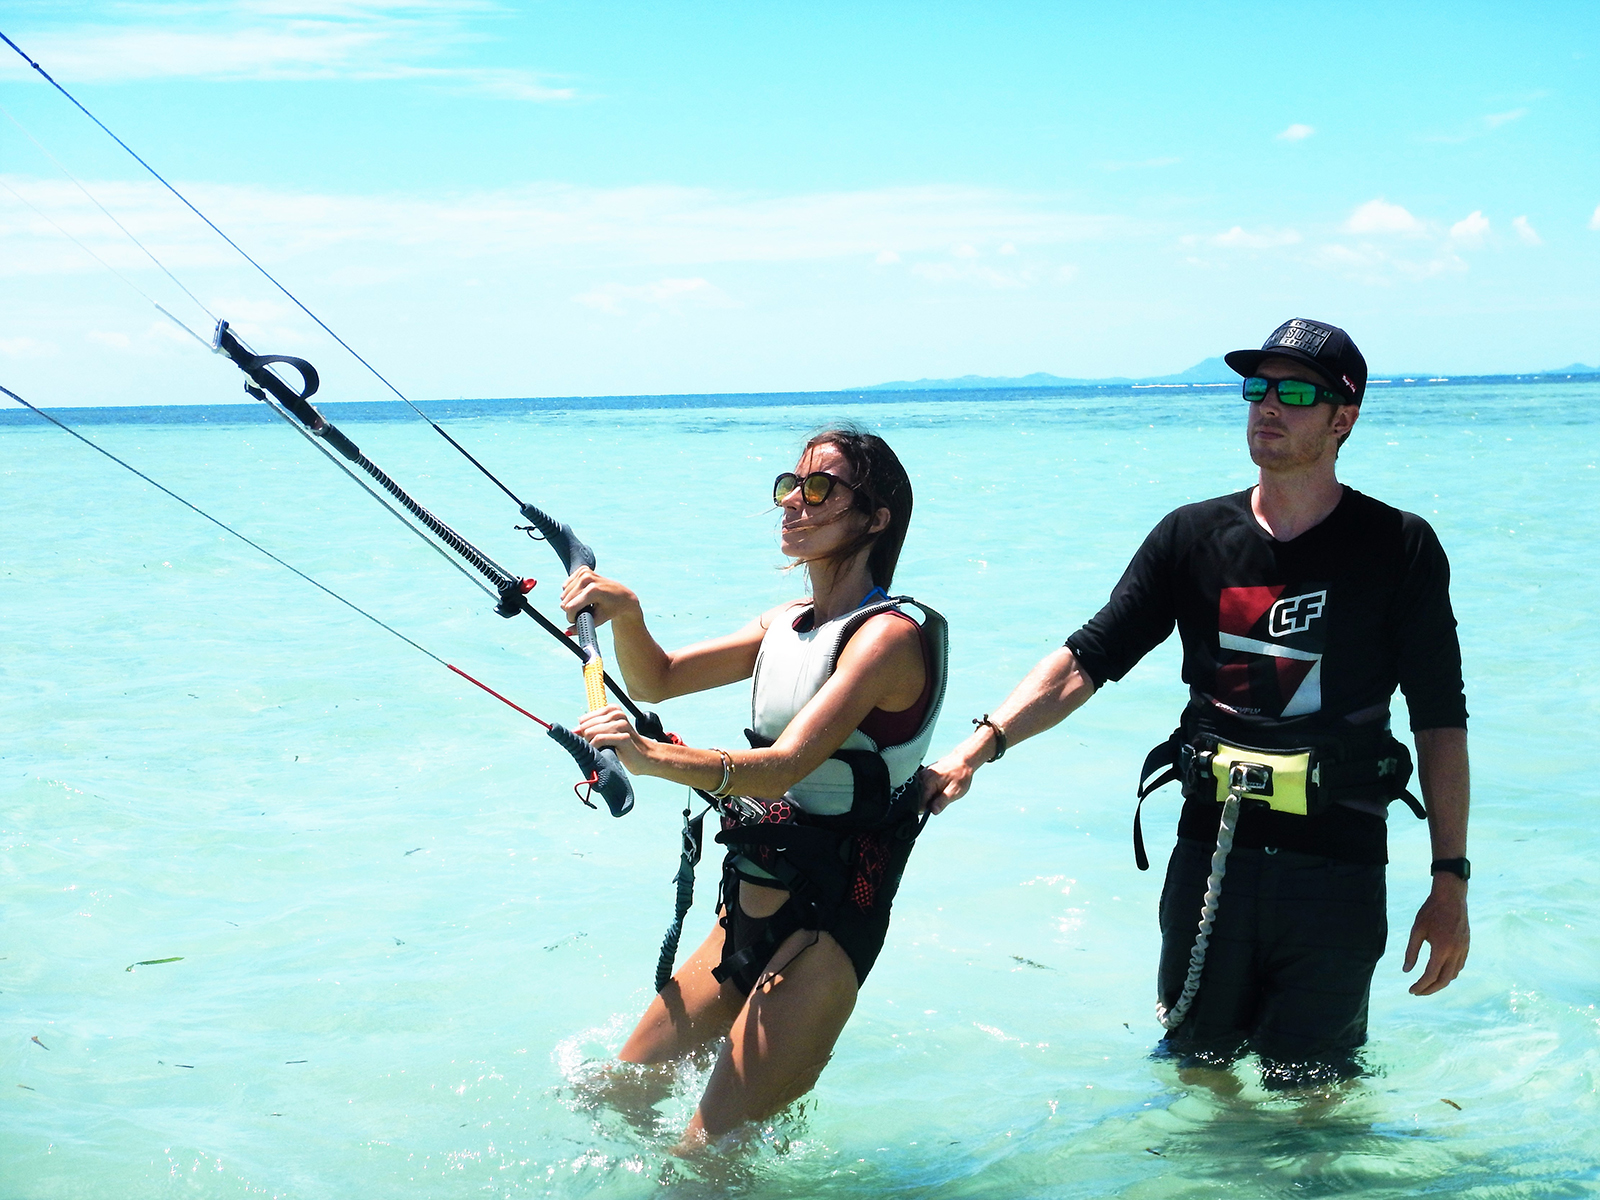 Philip teaching kitesurfing to a student